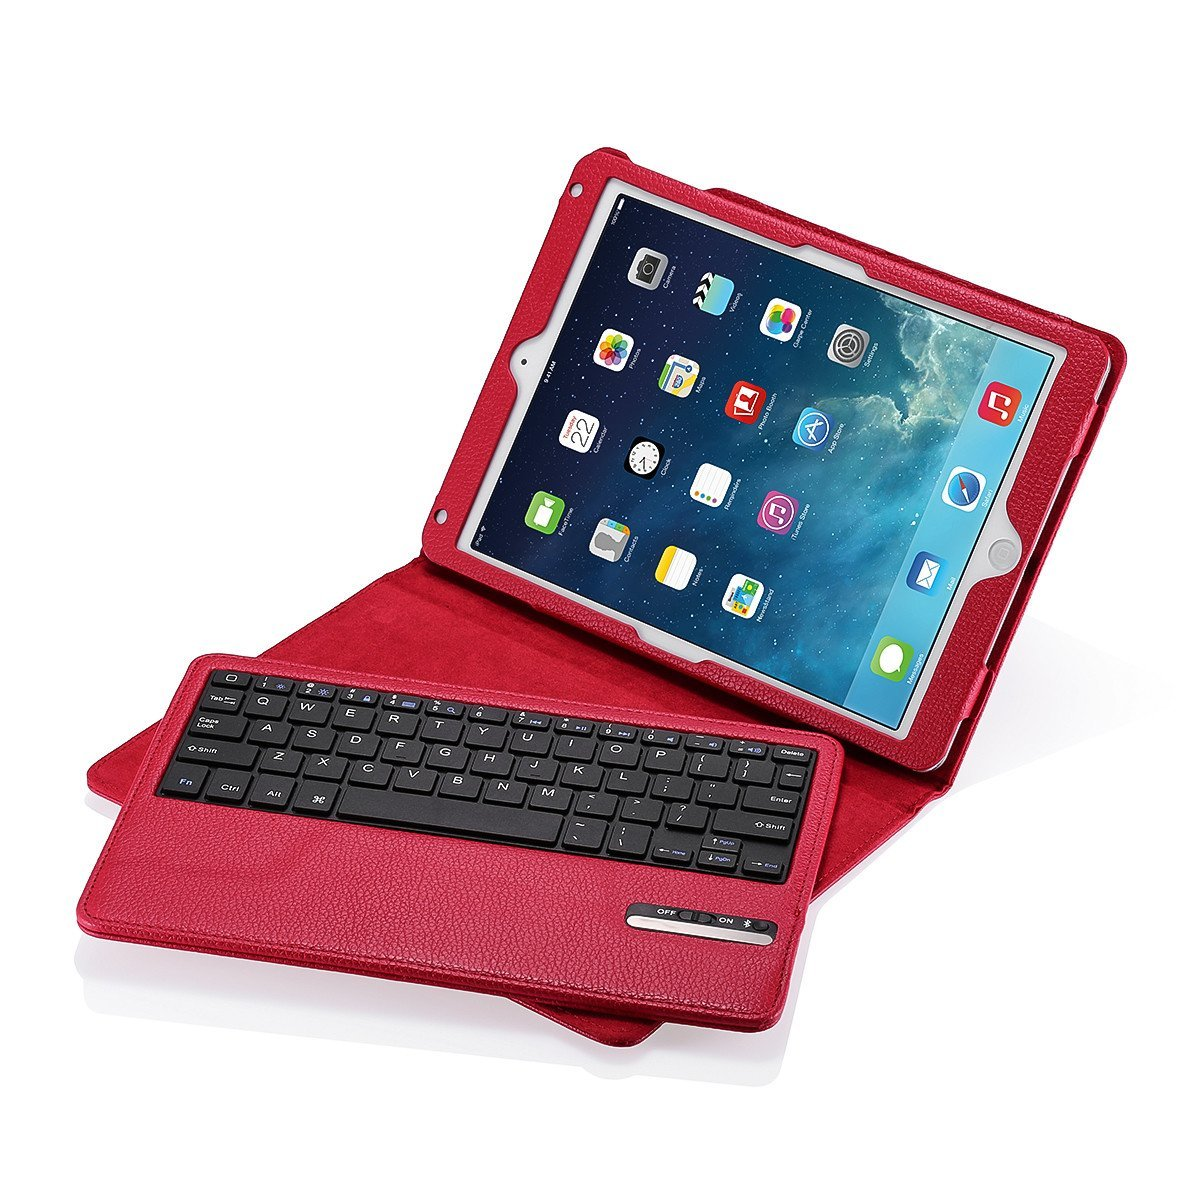 iPad Air/iPad Air 2 Keyboard + Leather Case, Poweradd Removable Bluetooth iPad Keyboard Case + Auto Wake/Sleep Function, Built-in Stand for Apple iPad Air 1/2, iPad 5/6 [Apple iOS 10+ Support] - Red by POWERADD